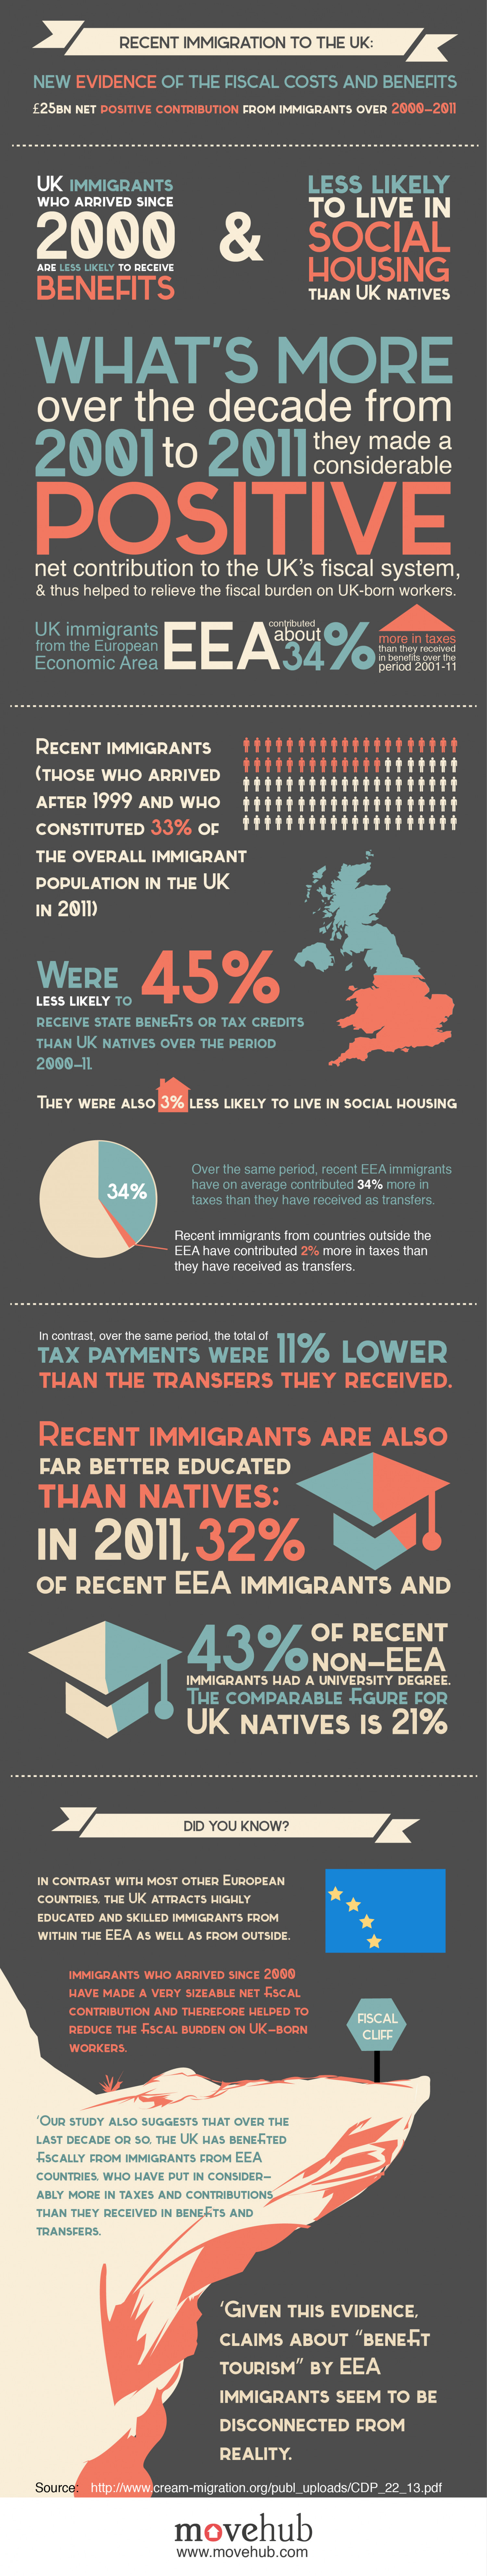 A New Look at Immigration to the UK Infographic